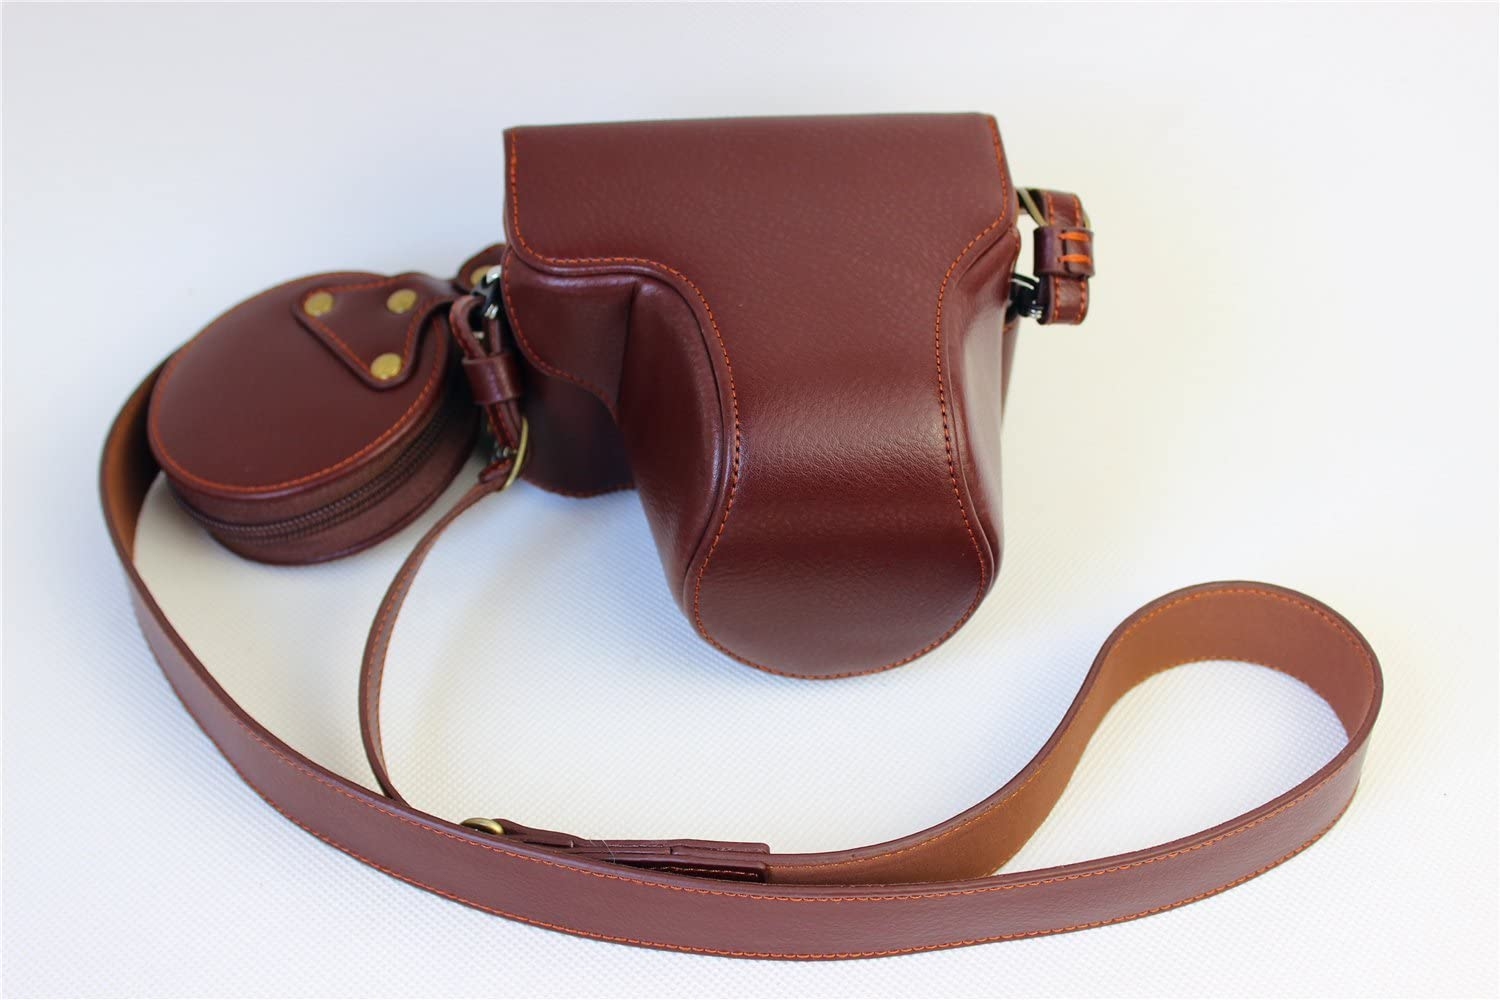 Black BolinUS Handmade Genuine Real Leather Fullbody Camera Case Bag Cover for Olympus Pen-F Bottom Opening Version with Neck Strap Olympus Pen-F Case